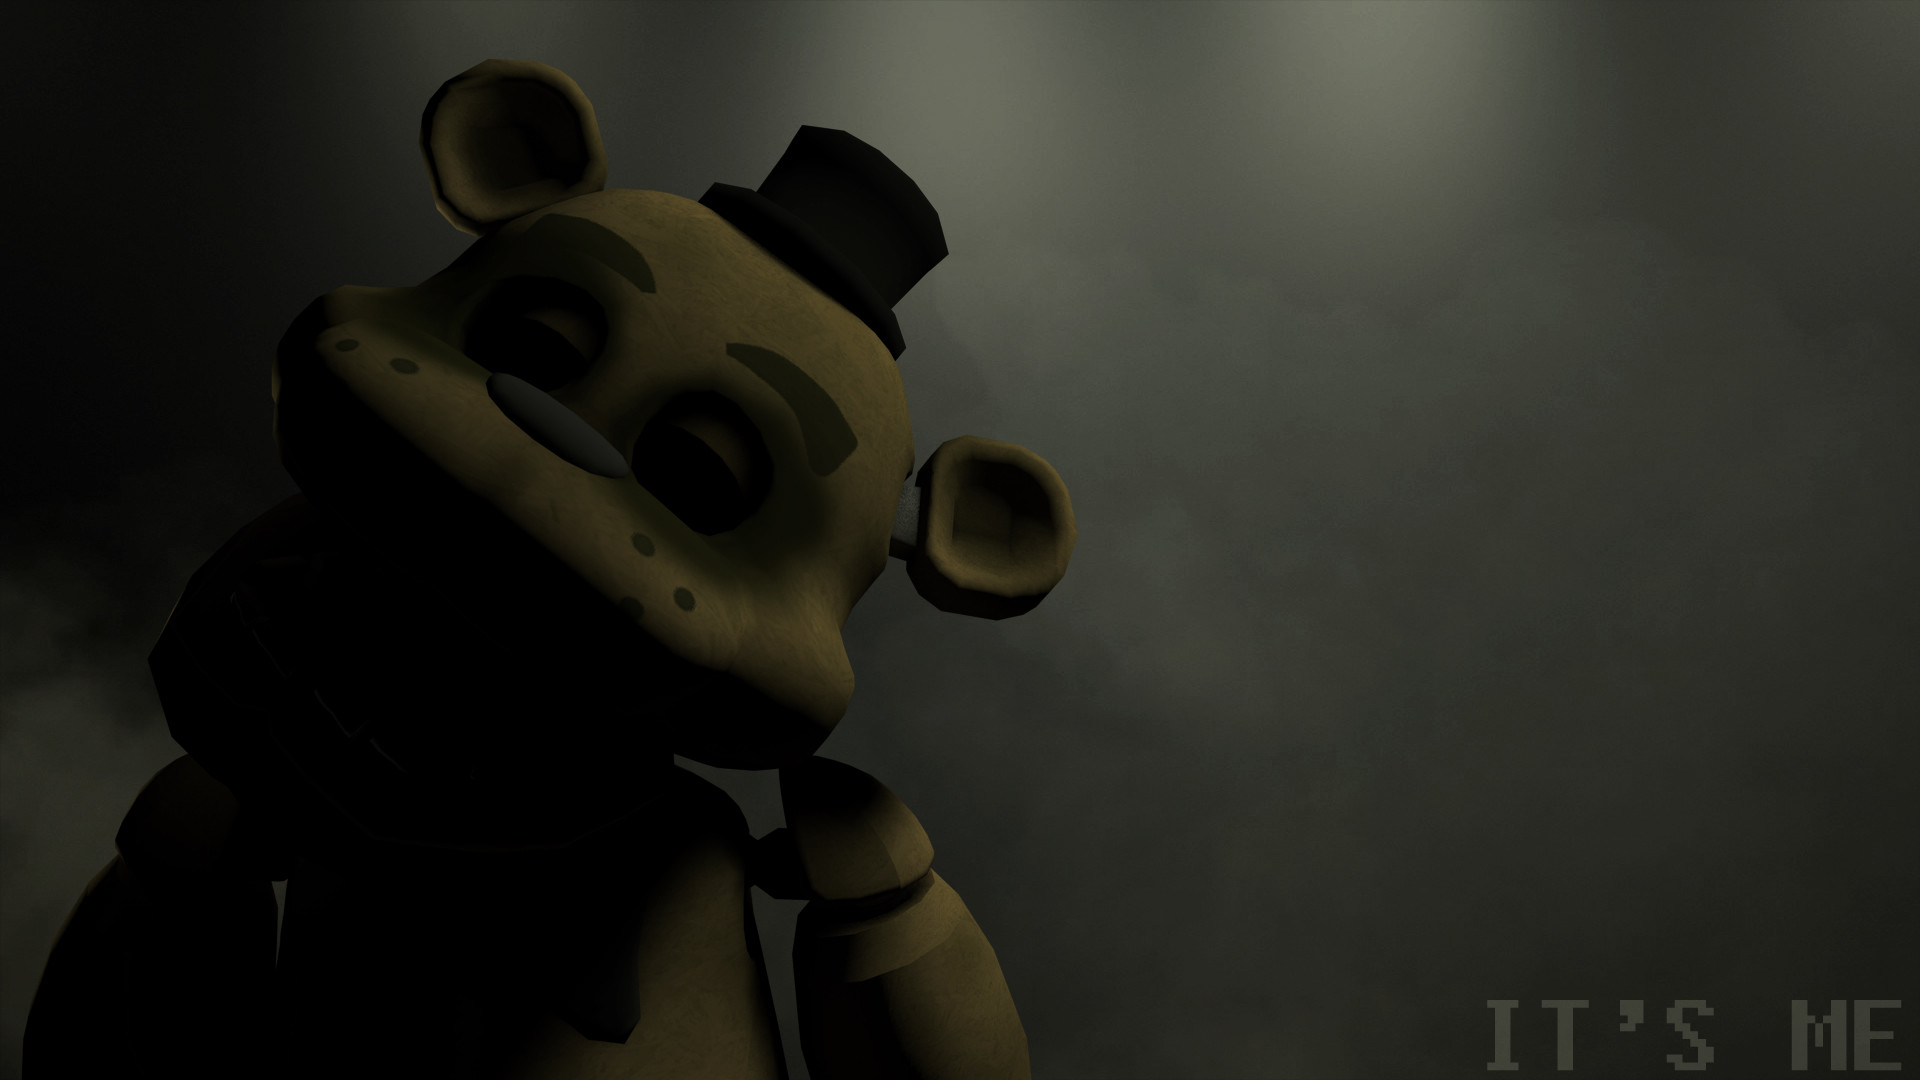 1920x1080 Five Nights at Freddy's Bonnie Wallpaper DOWNLOAD by NiksonYT on .